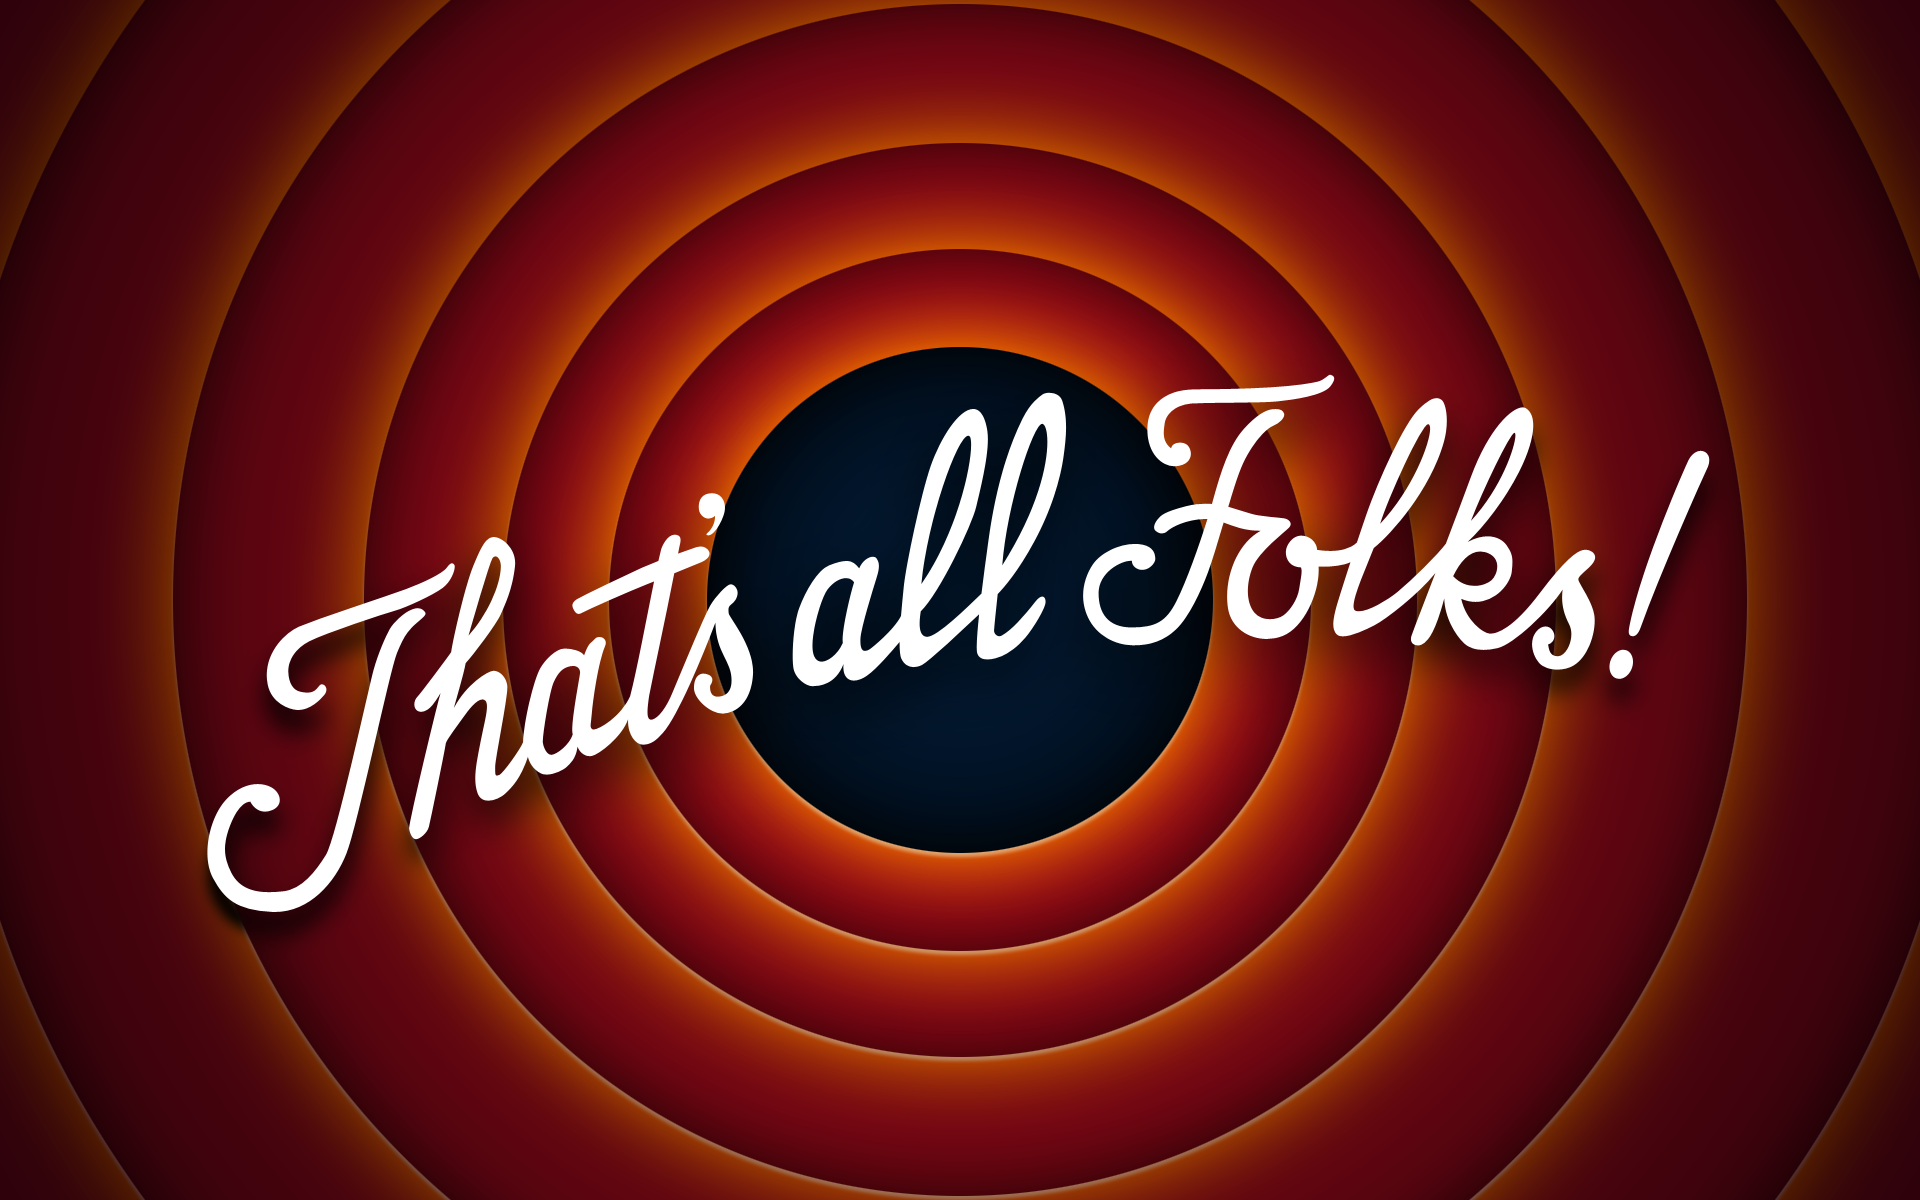 The End Thats All Folks free image.